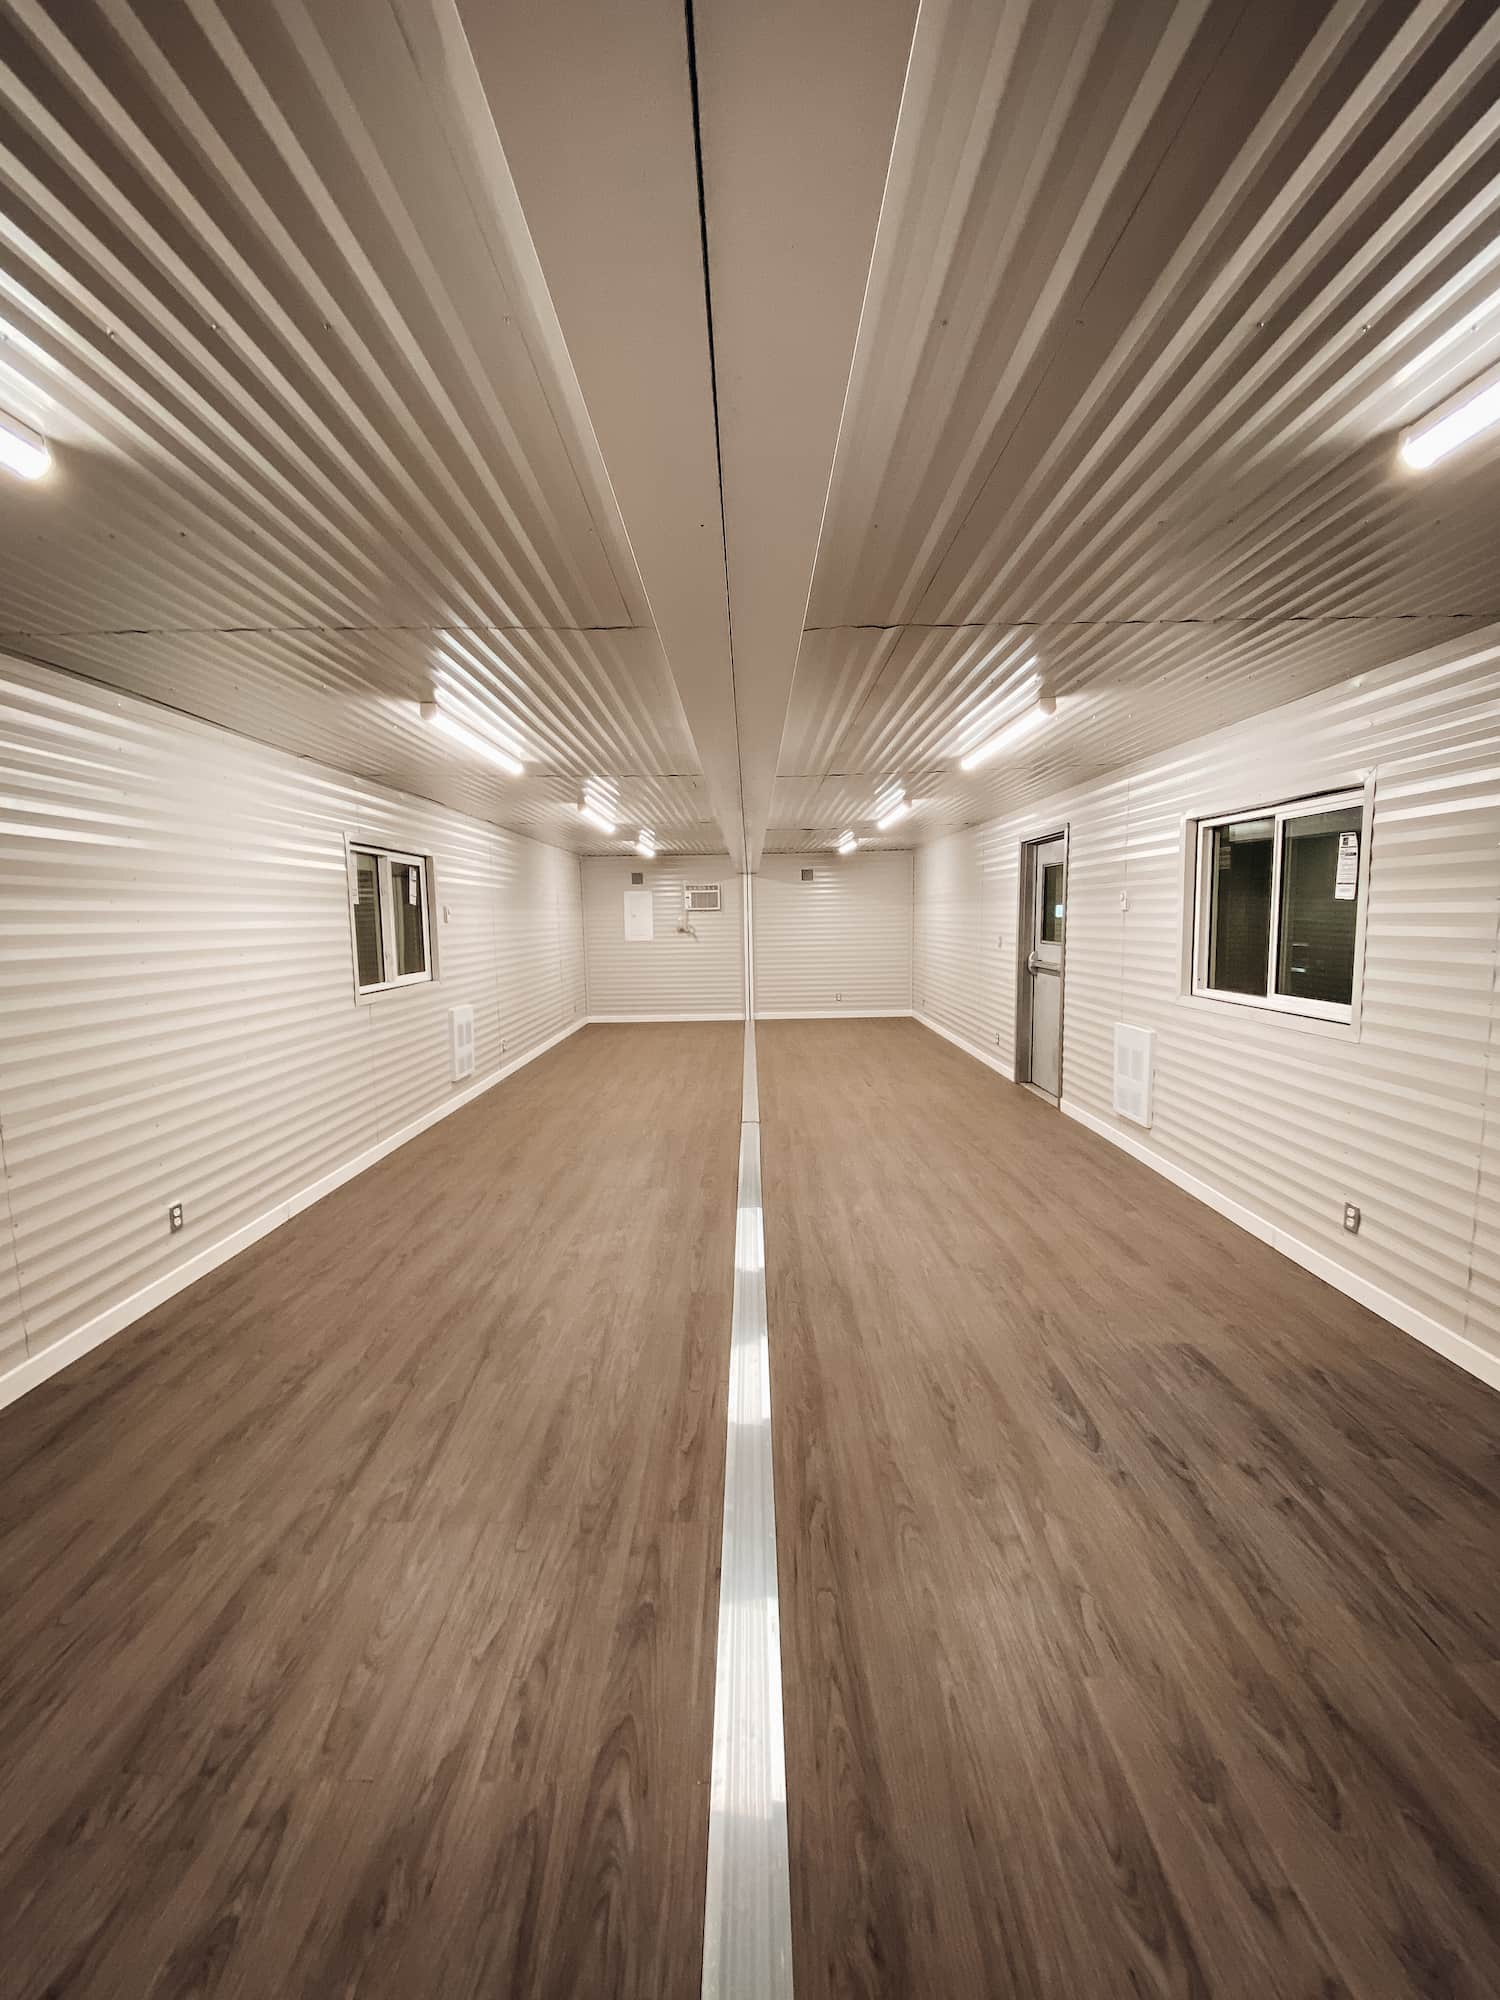 Double wide shipping containers for sale